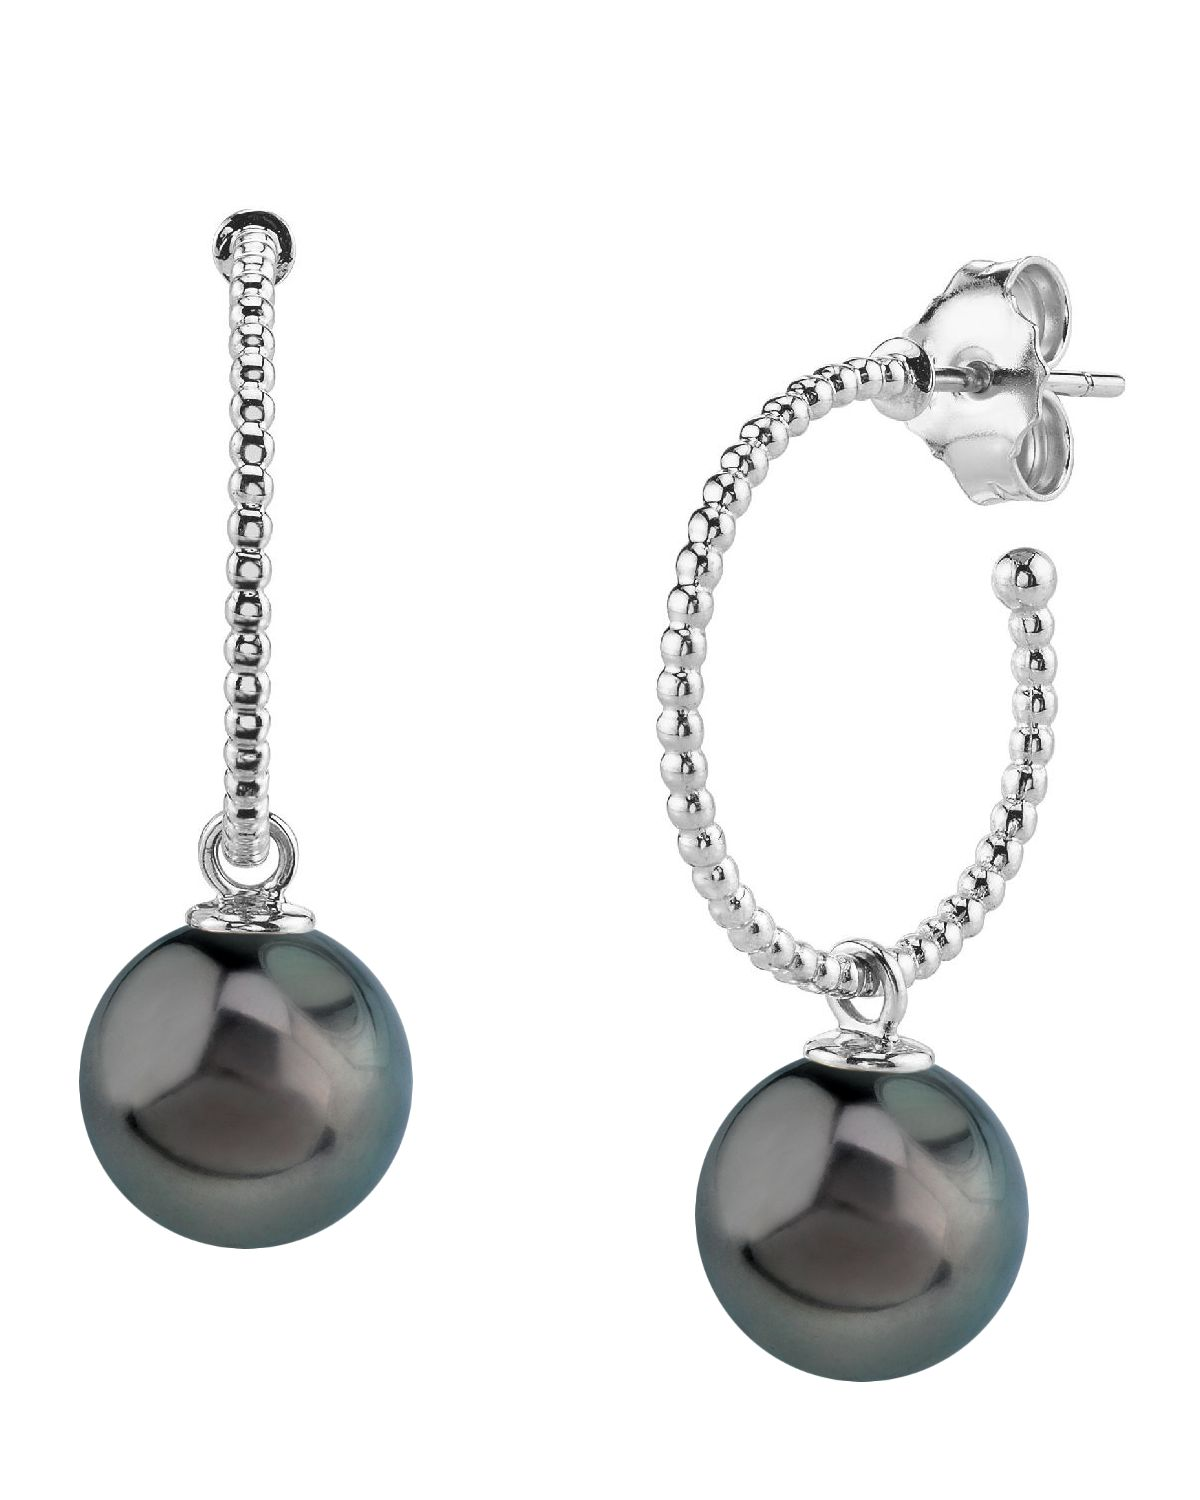 Tahitian South Sea Pearl Isabella Earrings